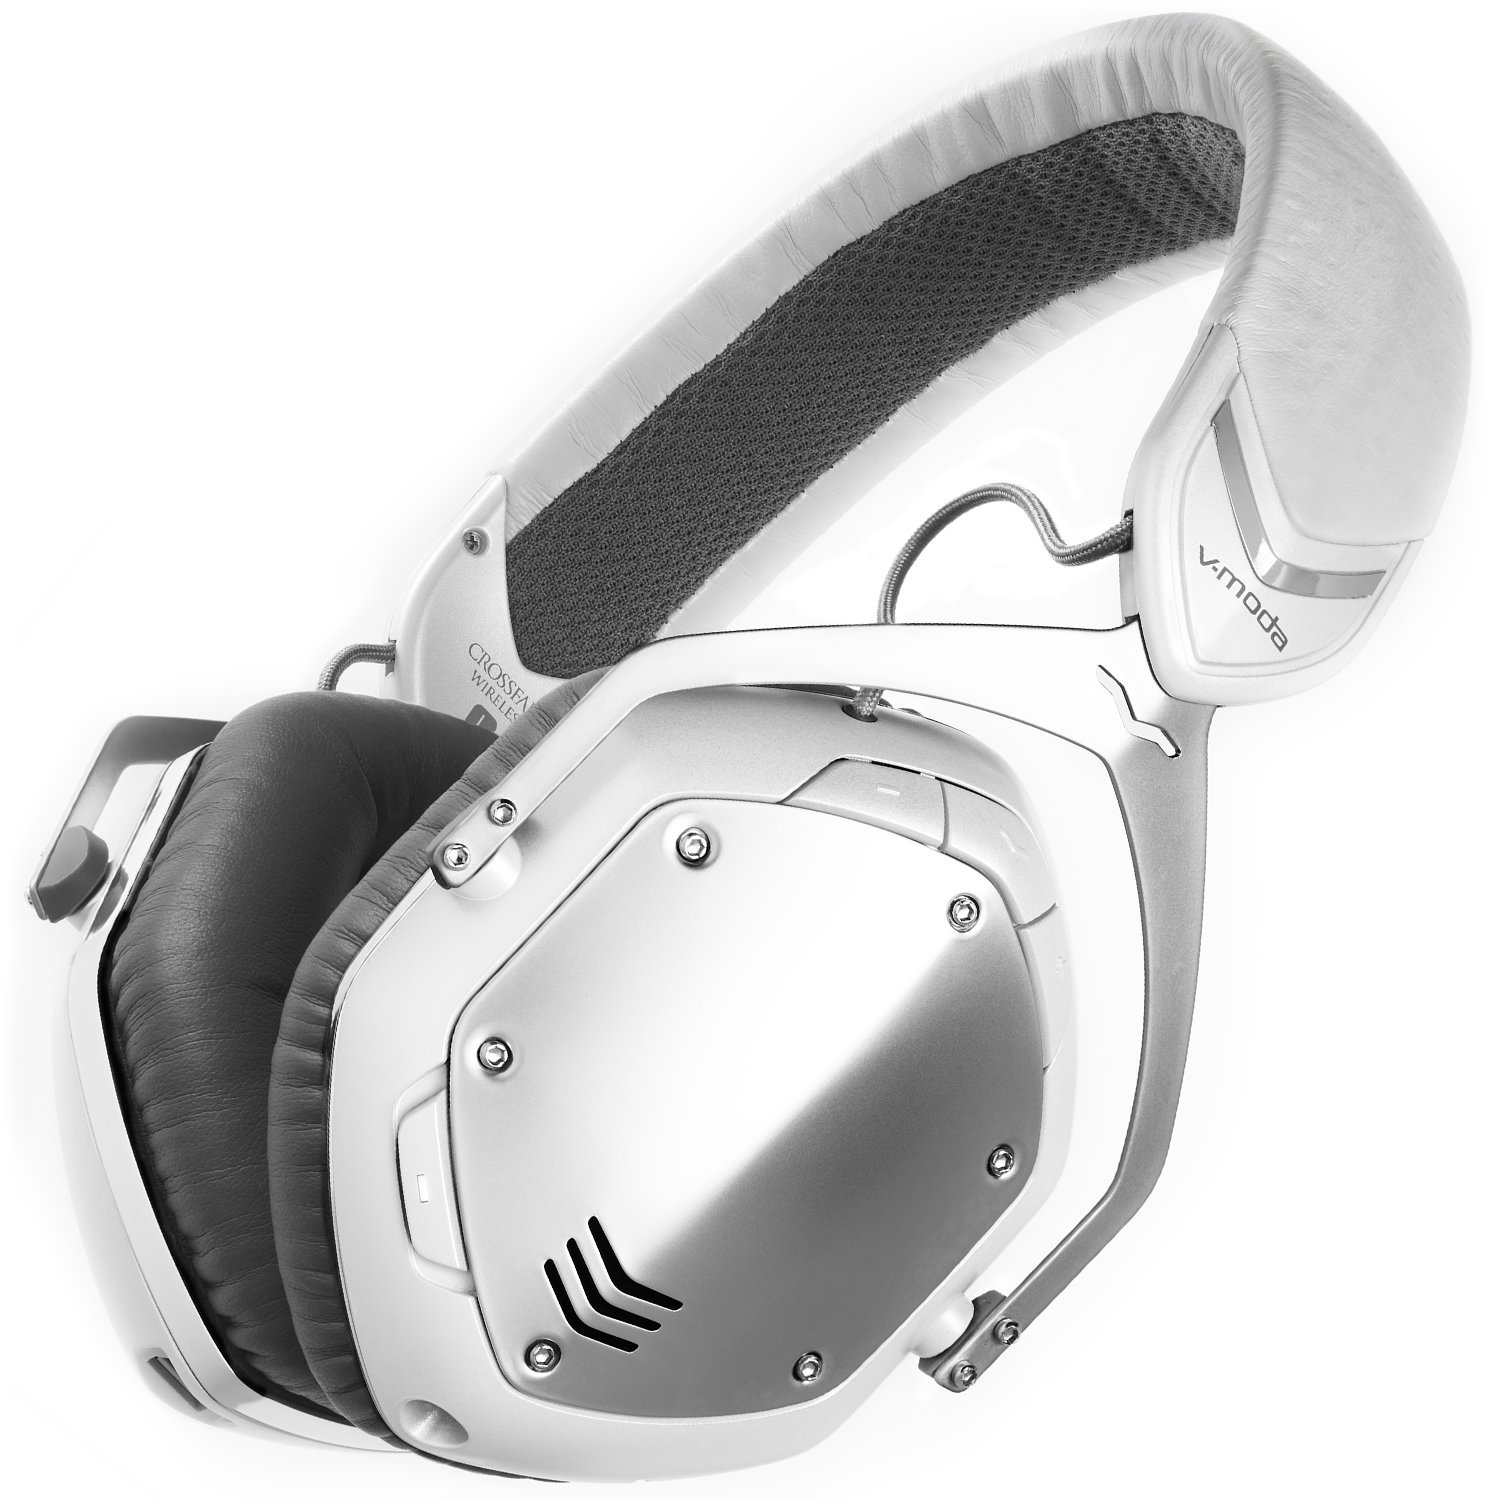 V-MODA Crossfade Over Ear Bluetooth Headphones